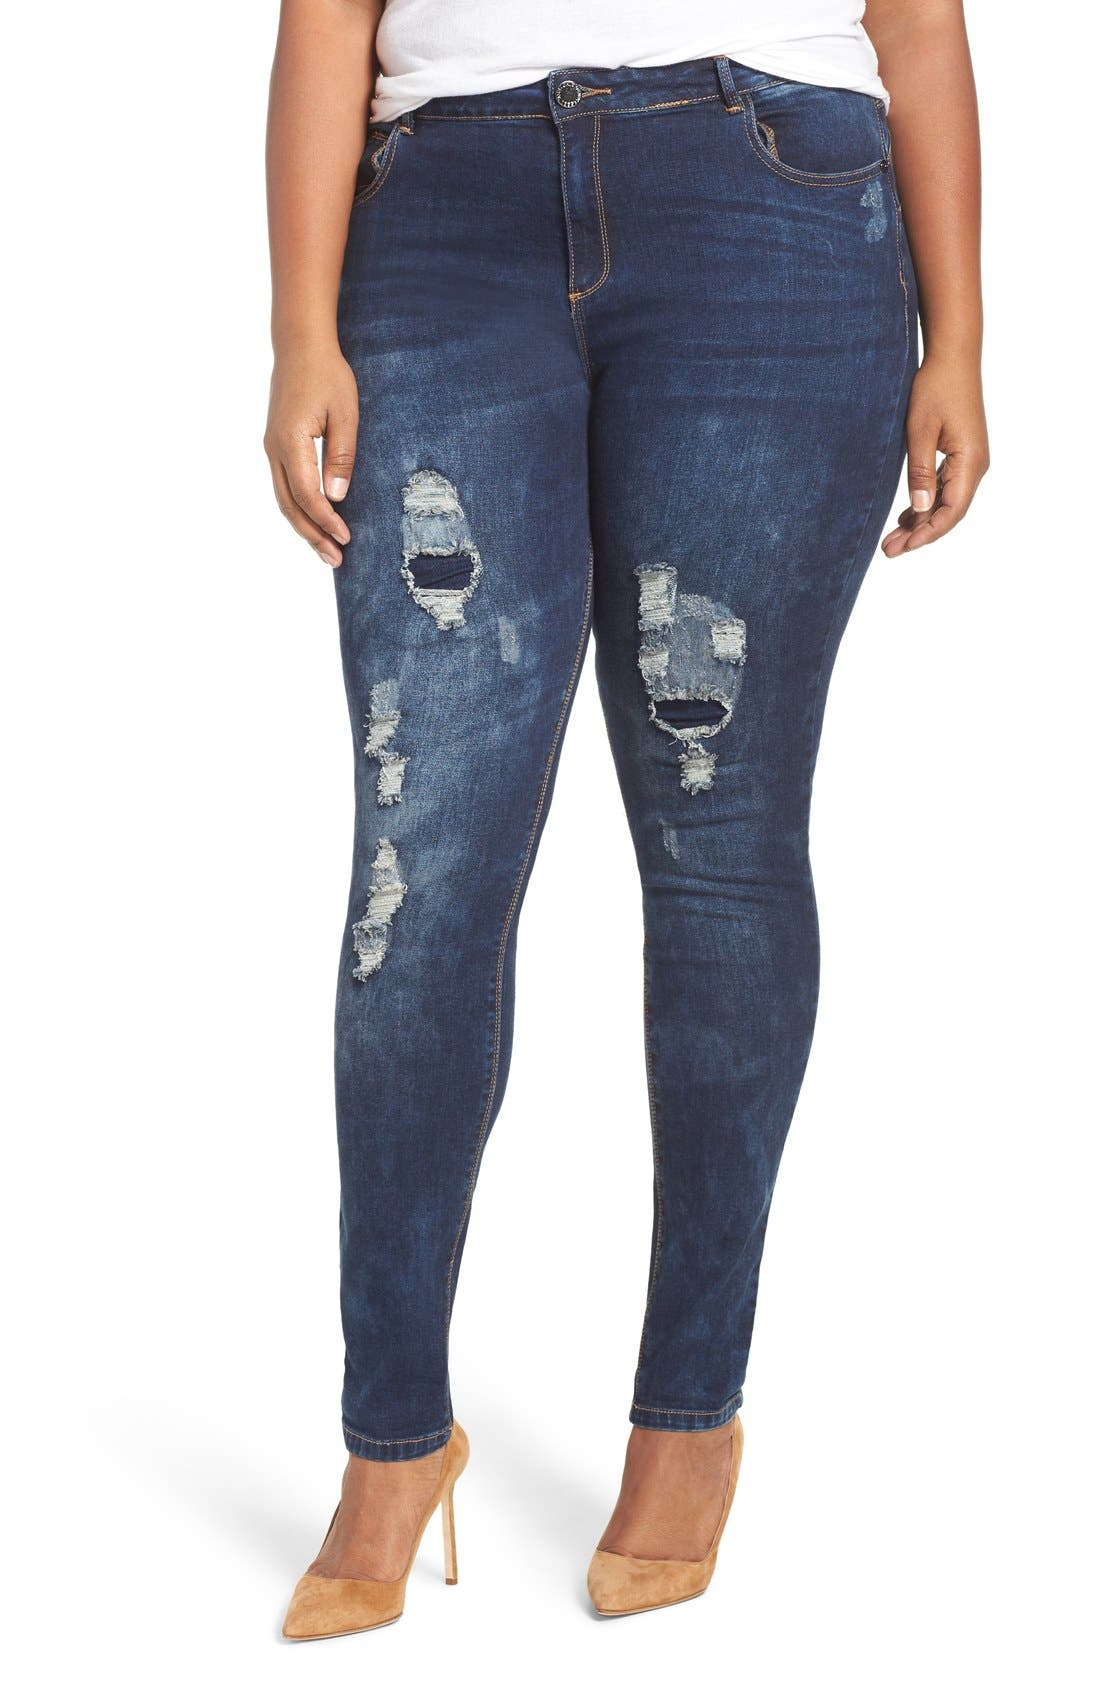 Main Image - City Chic 'Dismantle' Ripped Stretch Skinny Jeans (Plus Size)